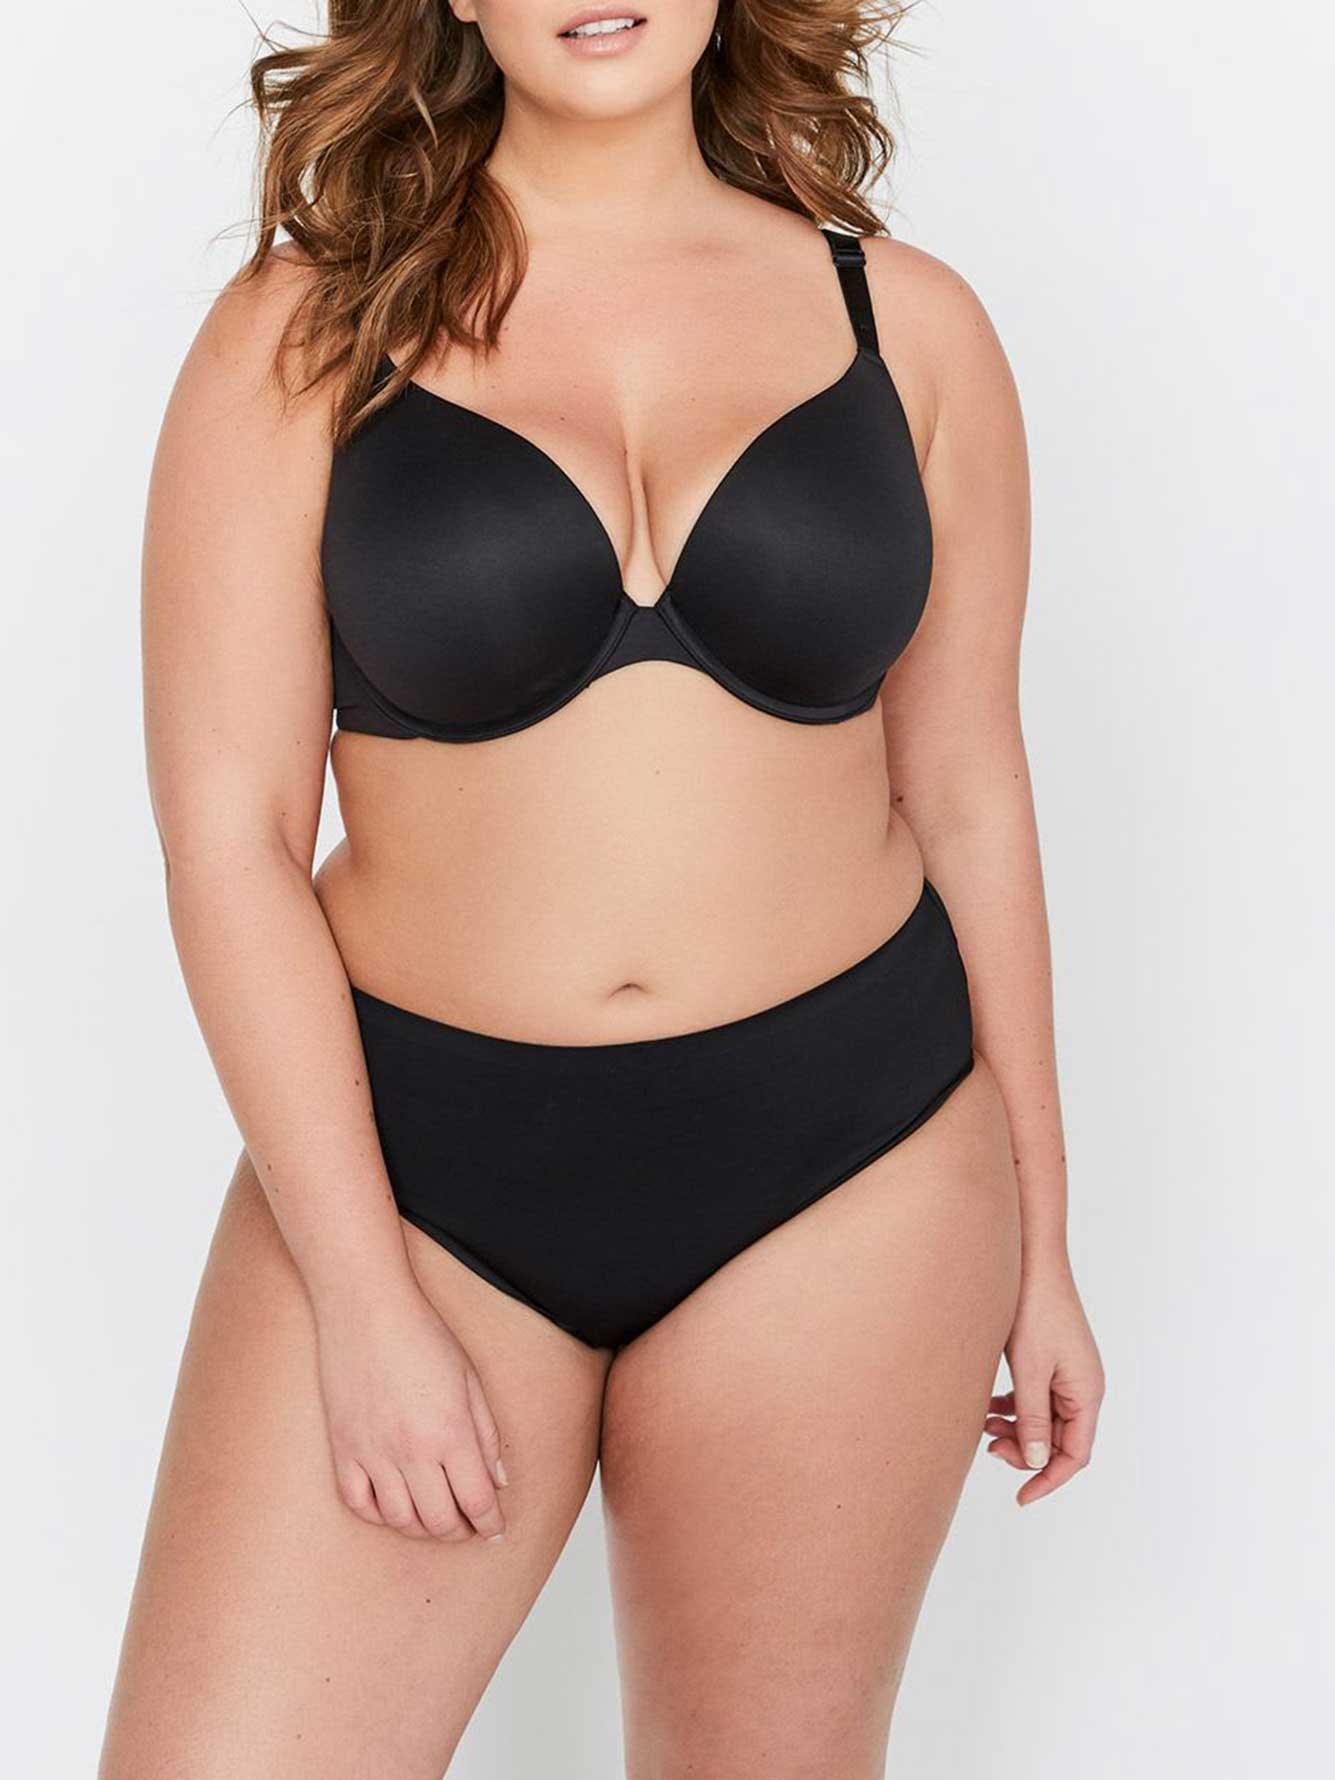 Temptress Plunge Push Up Bra, Size G & H - Déesse Collection